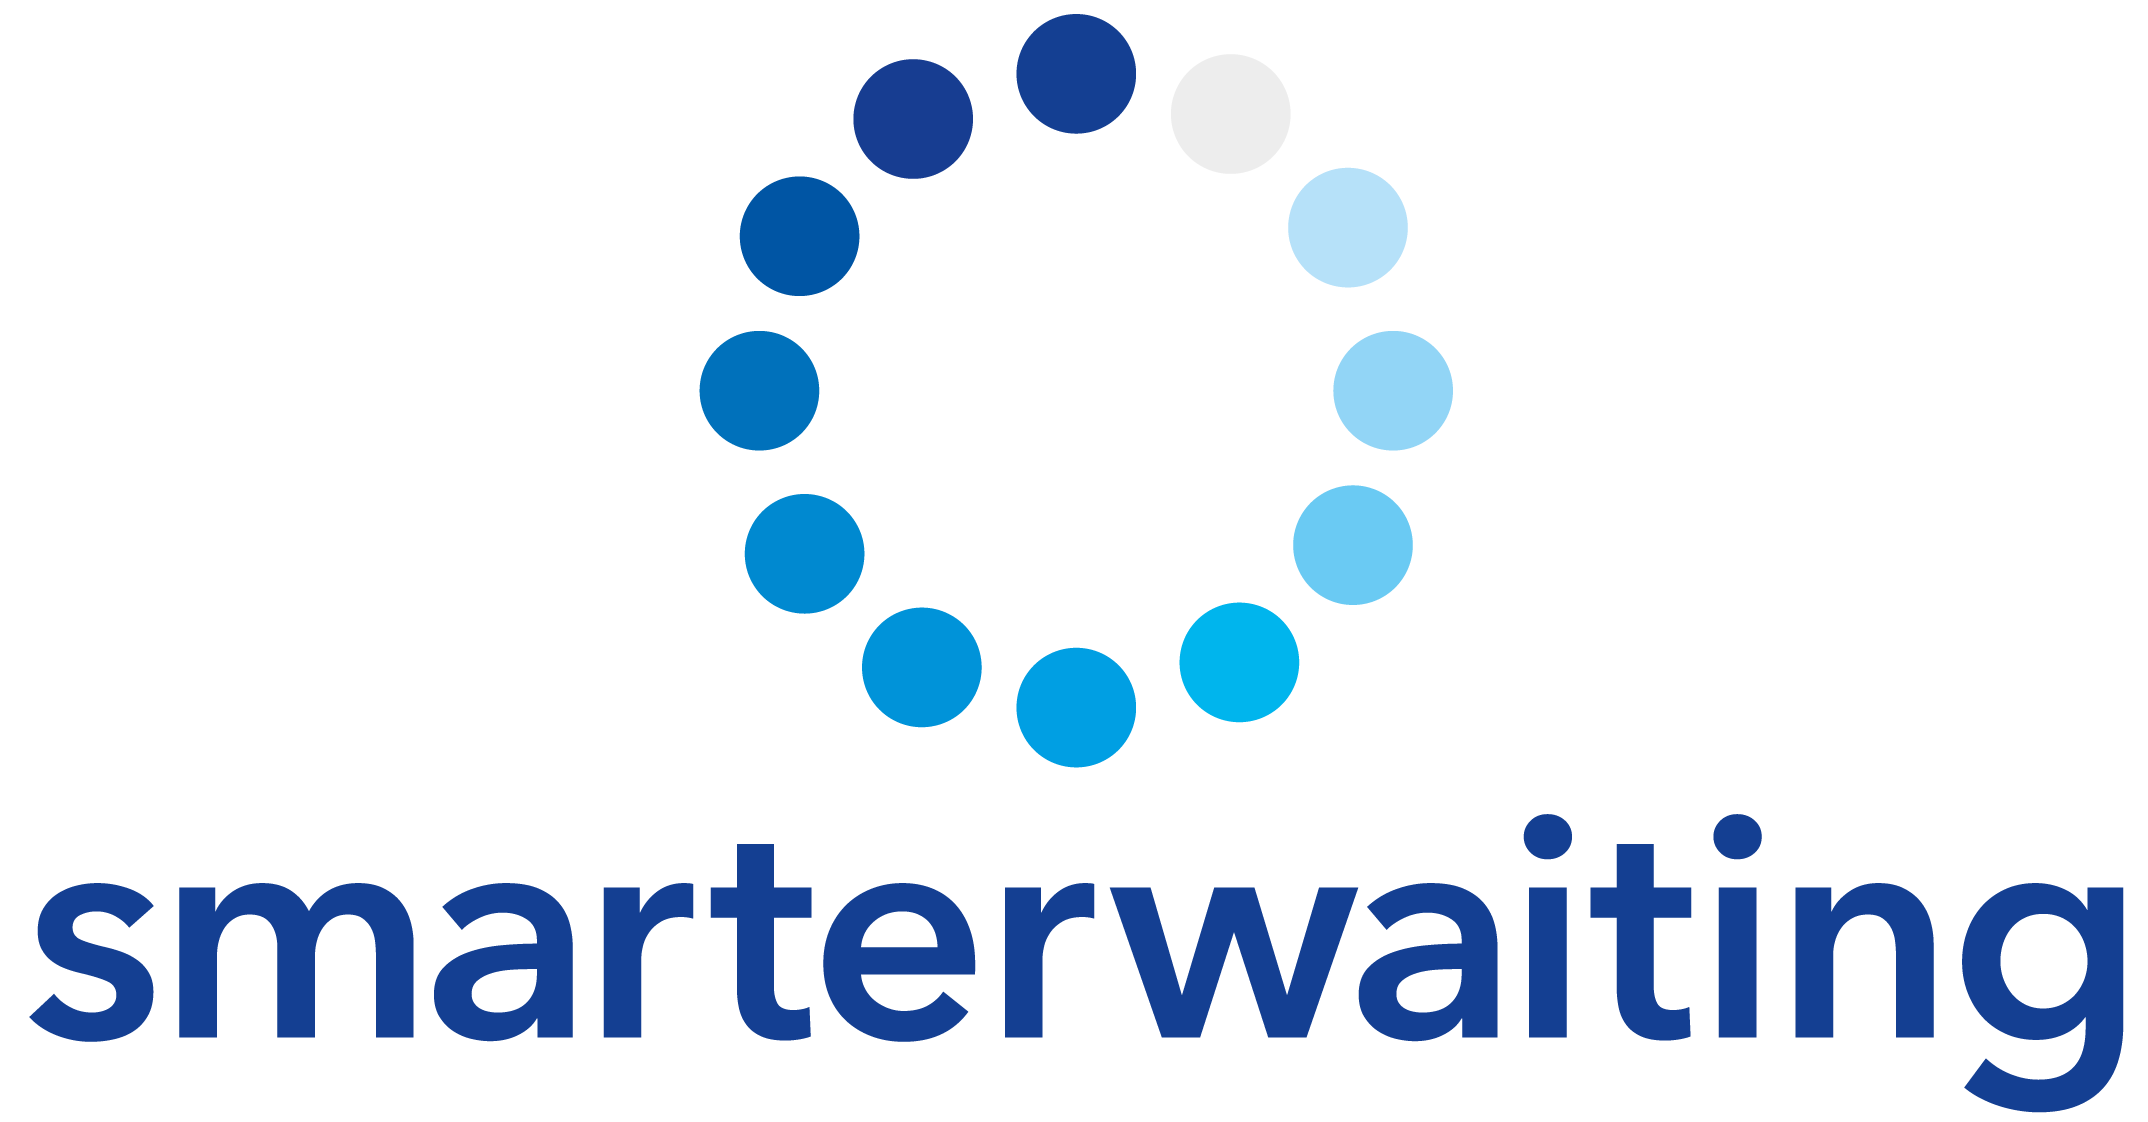 smarterwaiting by ratiotec CONNECT